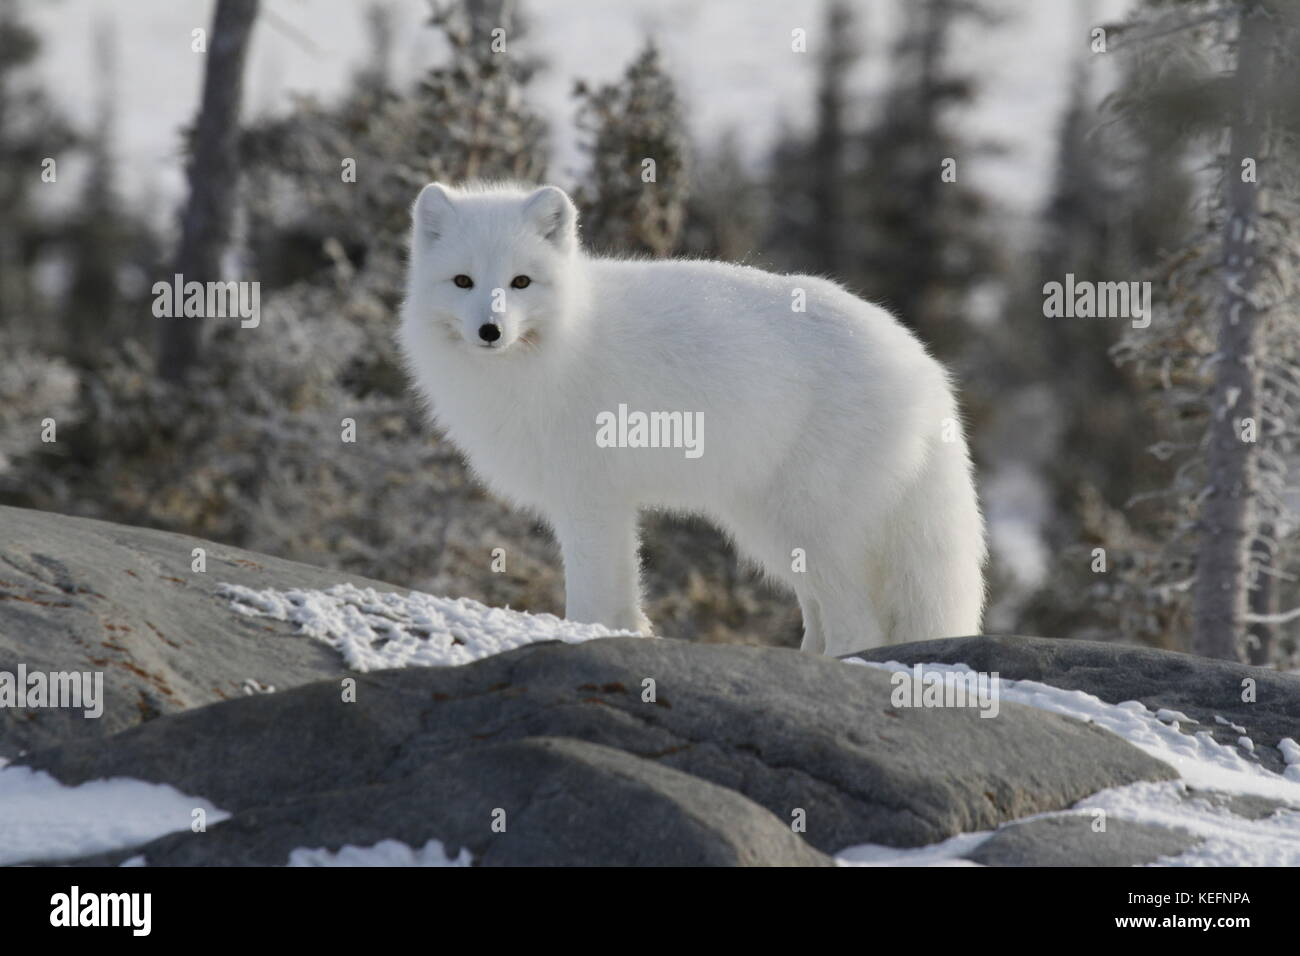 Arctic fox (Vulpes Lagopus) in white winter coat staring off while standing on a large rock with trees in the background - Stock Image